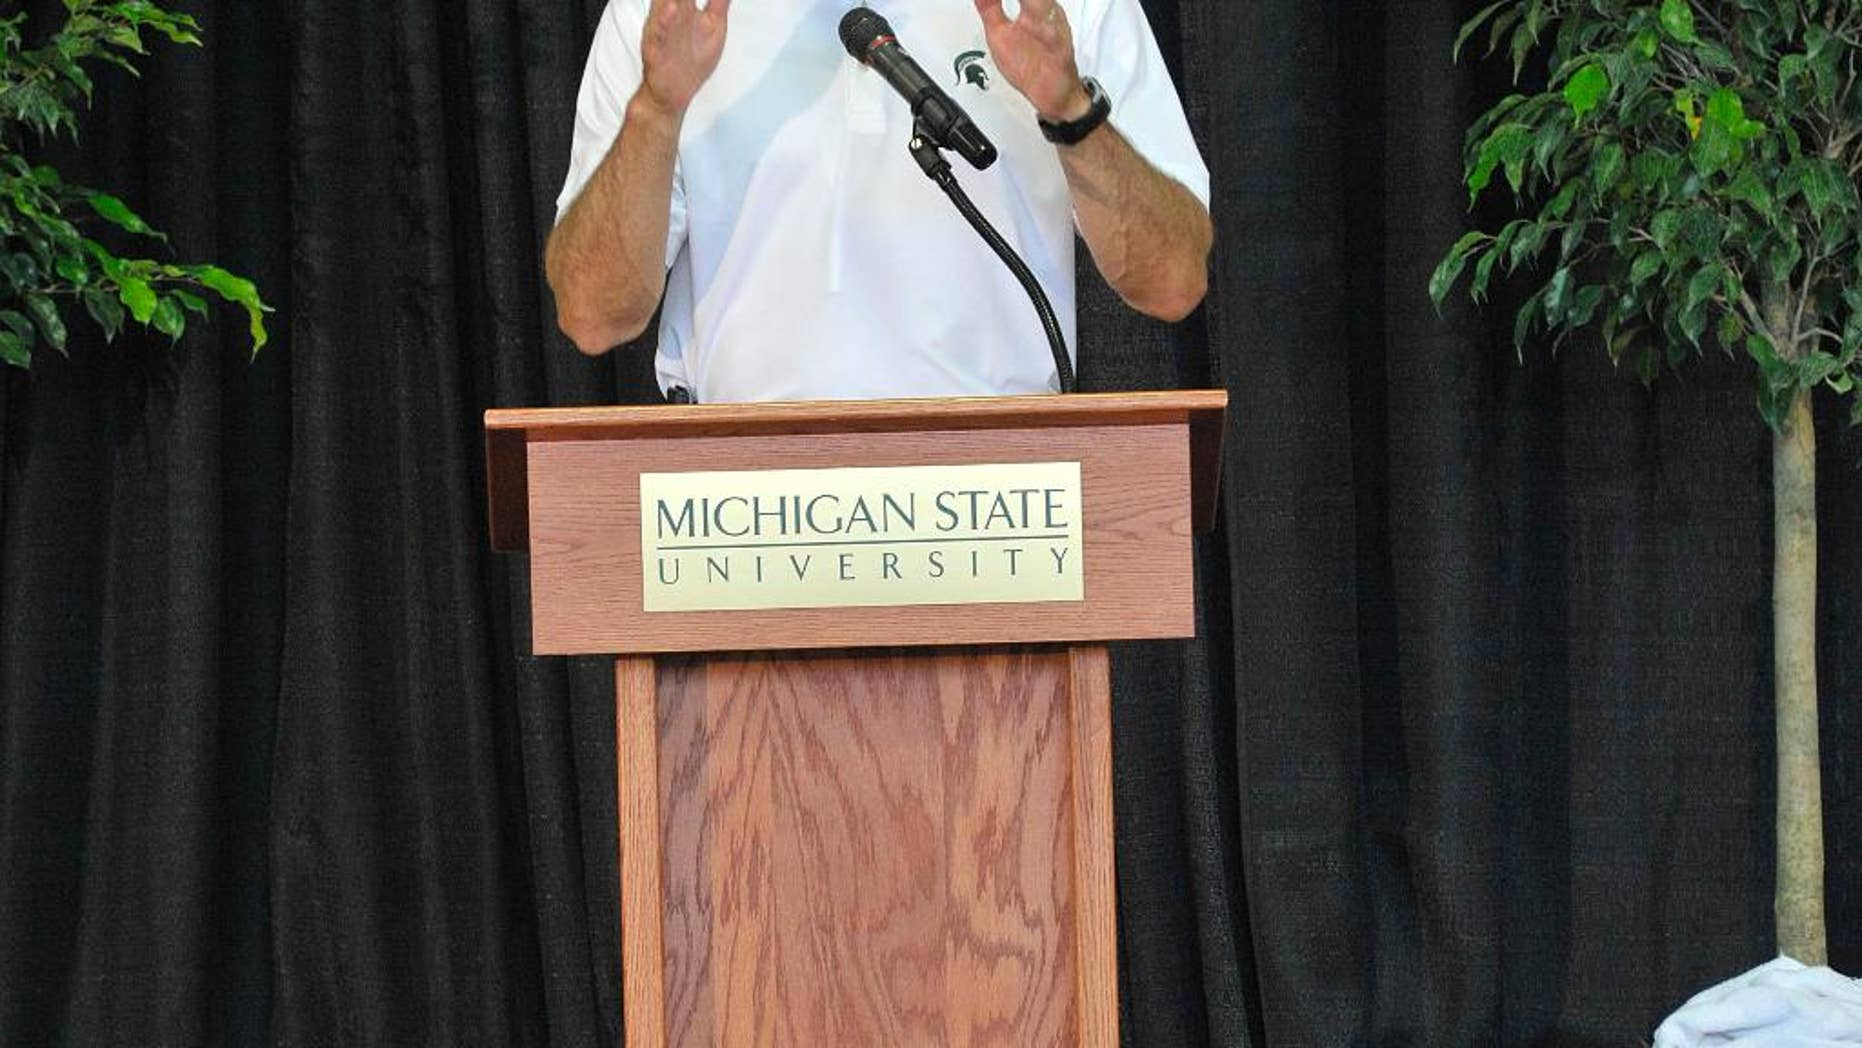 In this photo taken on Monday, Aug. 25, 2014, Michigan State head football coach Mark Dantonio speaks during a ceremony as the university unveils their north end zone addition to Spartan Stadium in East Lansing, Mich. (AP Photo/Detroit News,  Dale G. Young)  DETROIT FREE PRESS OUT; HUFFINGTON POST OUT